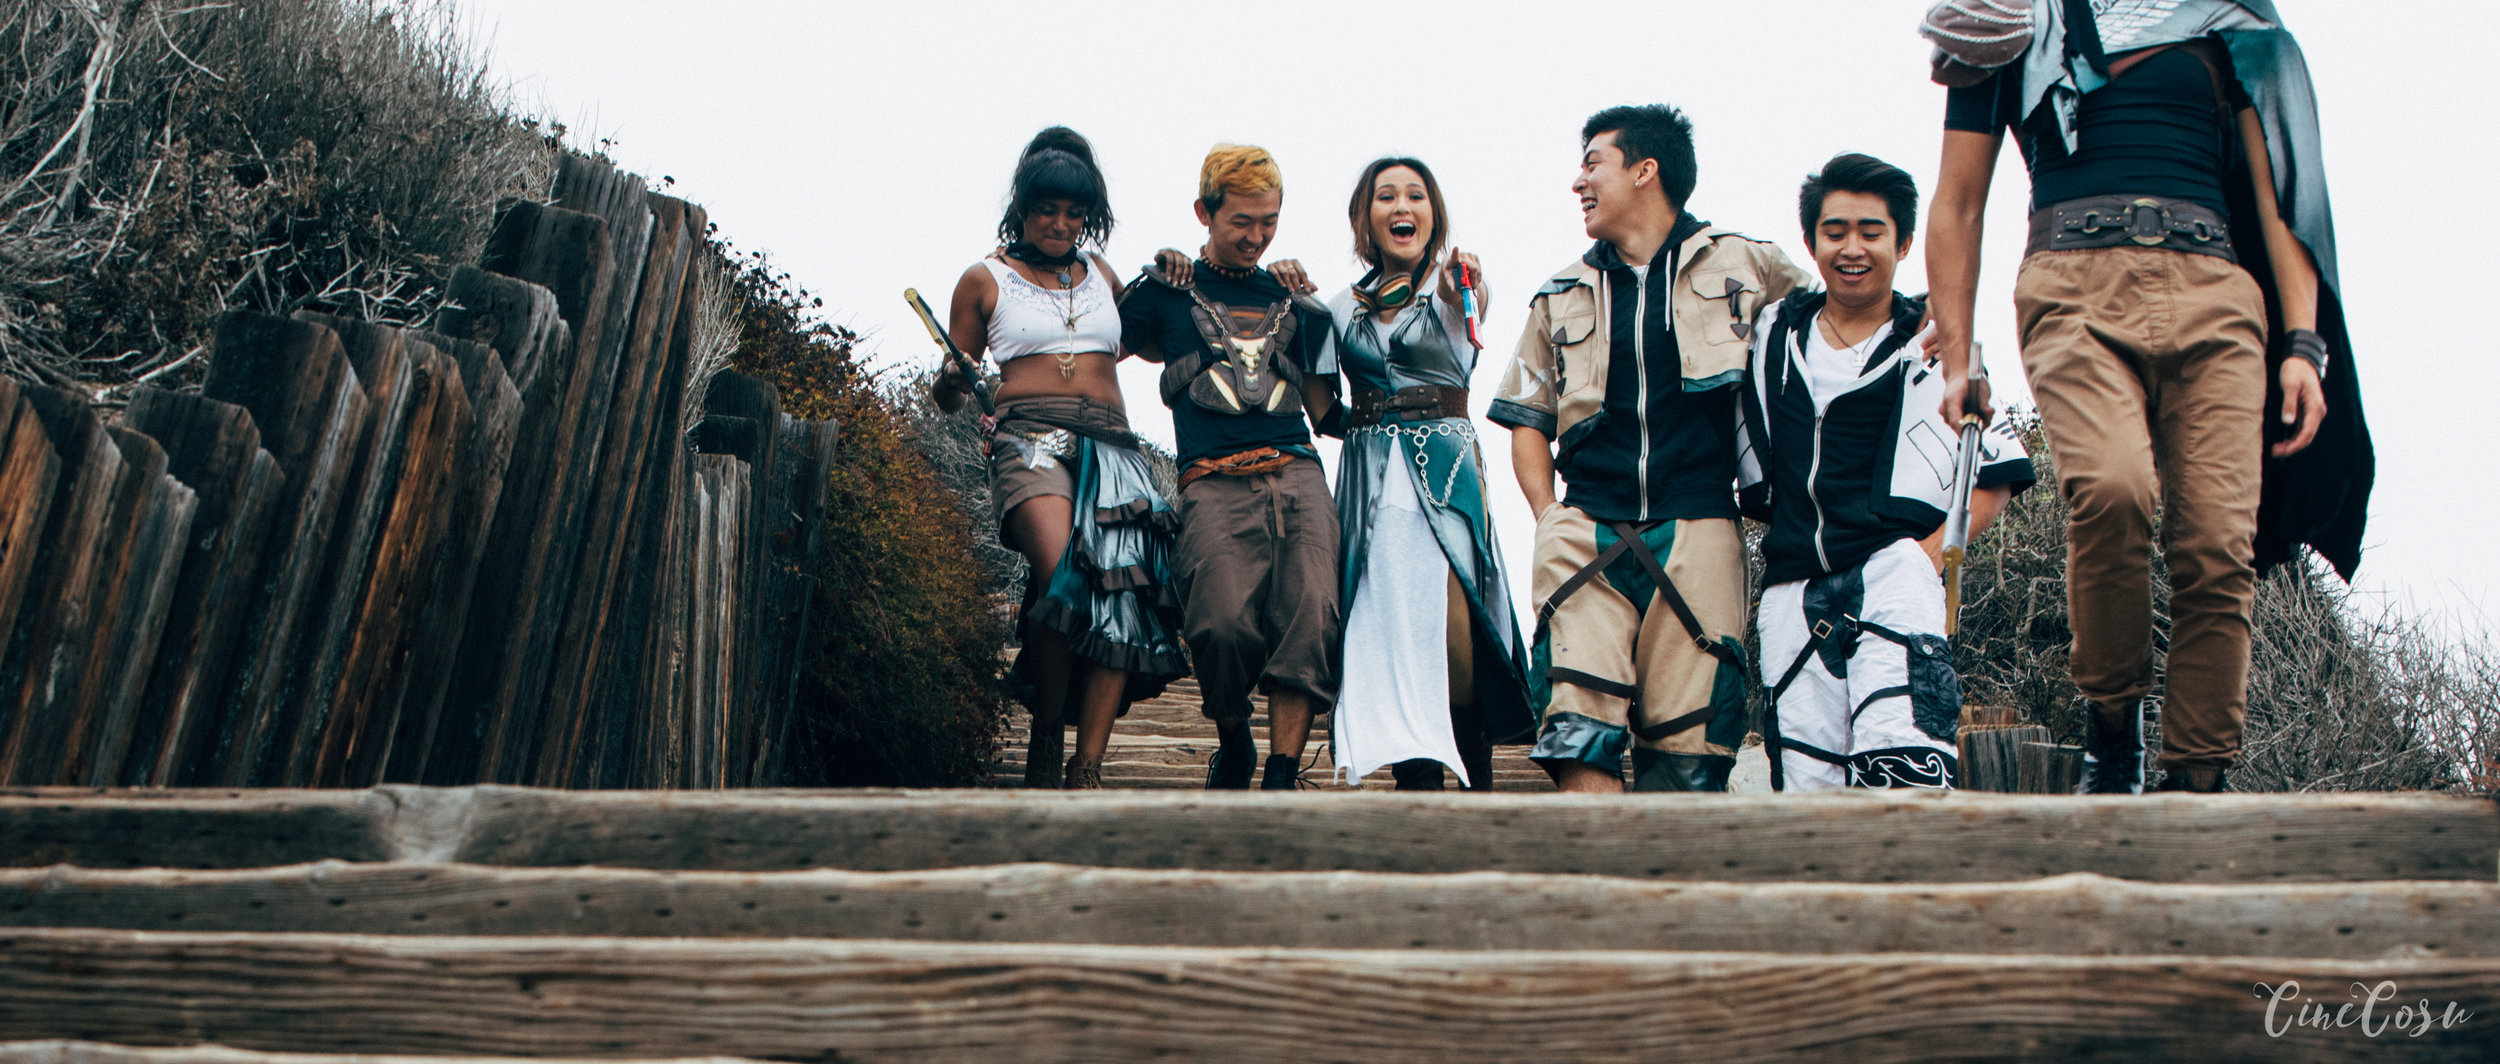 Survey-Corps-Dance-Crew-Into-The-Kingdom-Cinecosu-4-RSWM.jpg